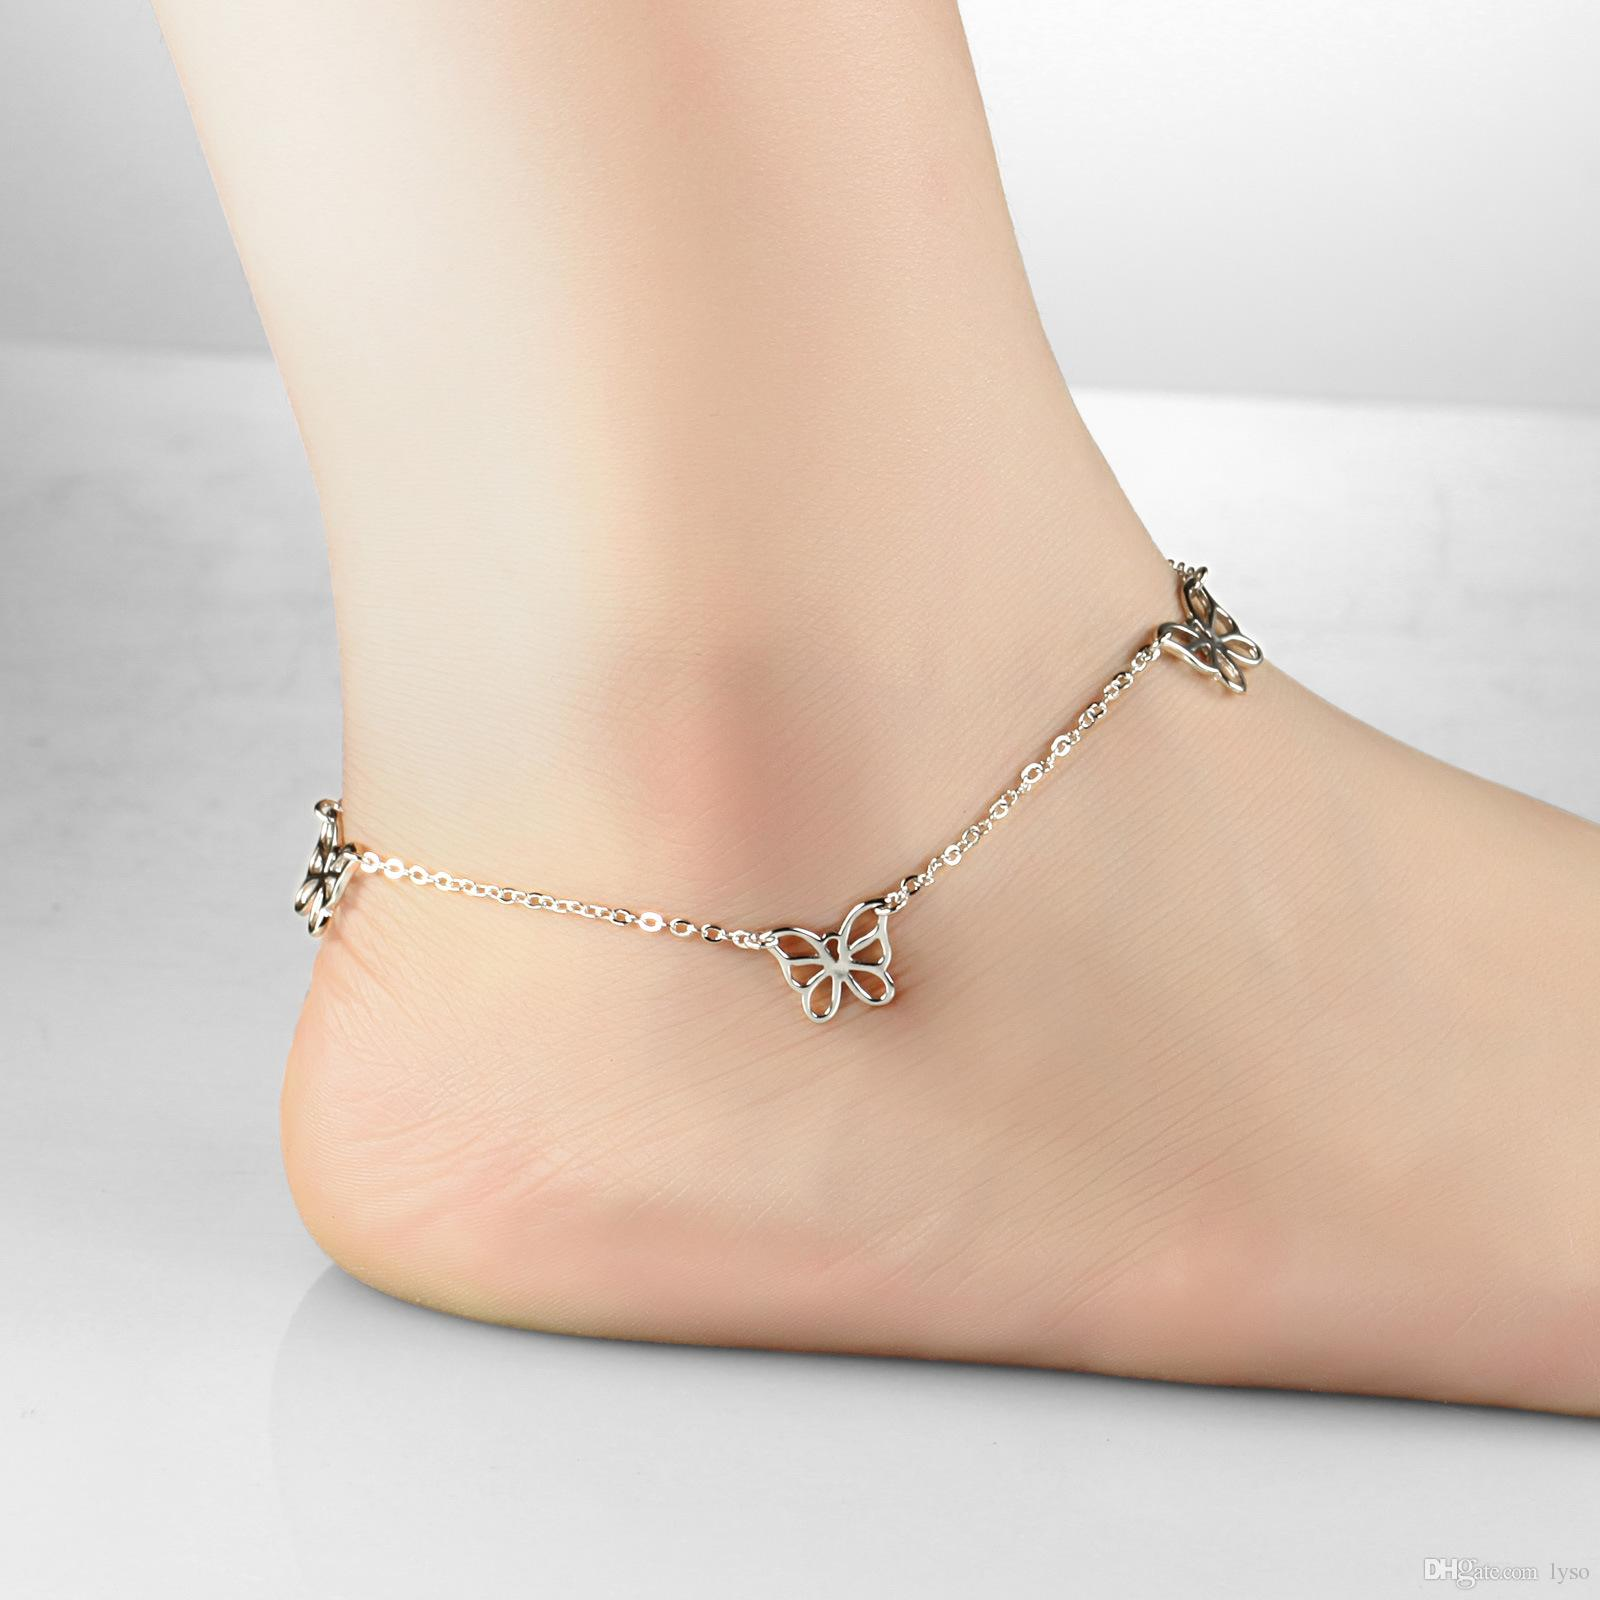 t page anklet original products bohemian thailand brass silver anklets cotton online waxed adjustable jewelry or cord size collections handmade